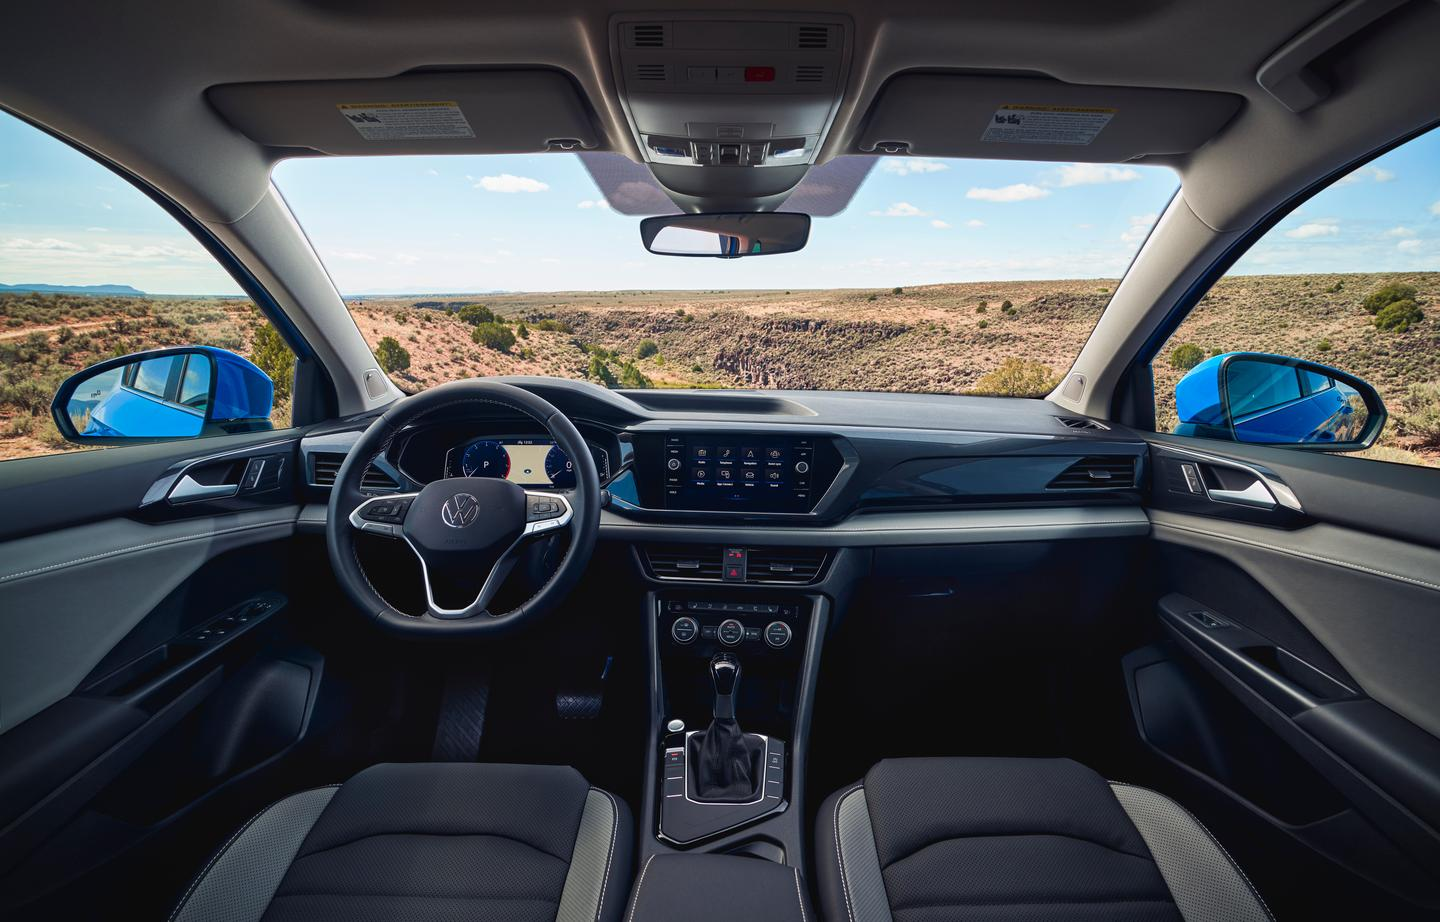 The touchscreen and shifter surrounds angle just enough to let you know it's the driver's equipment